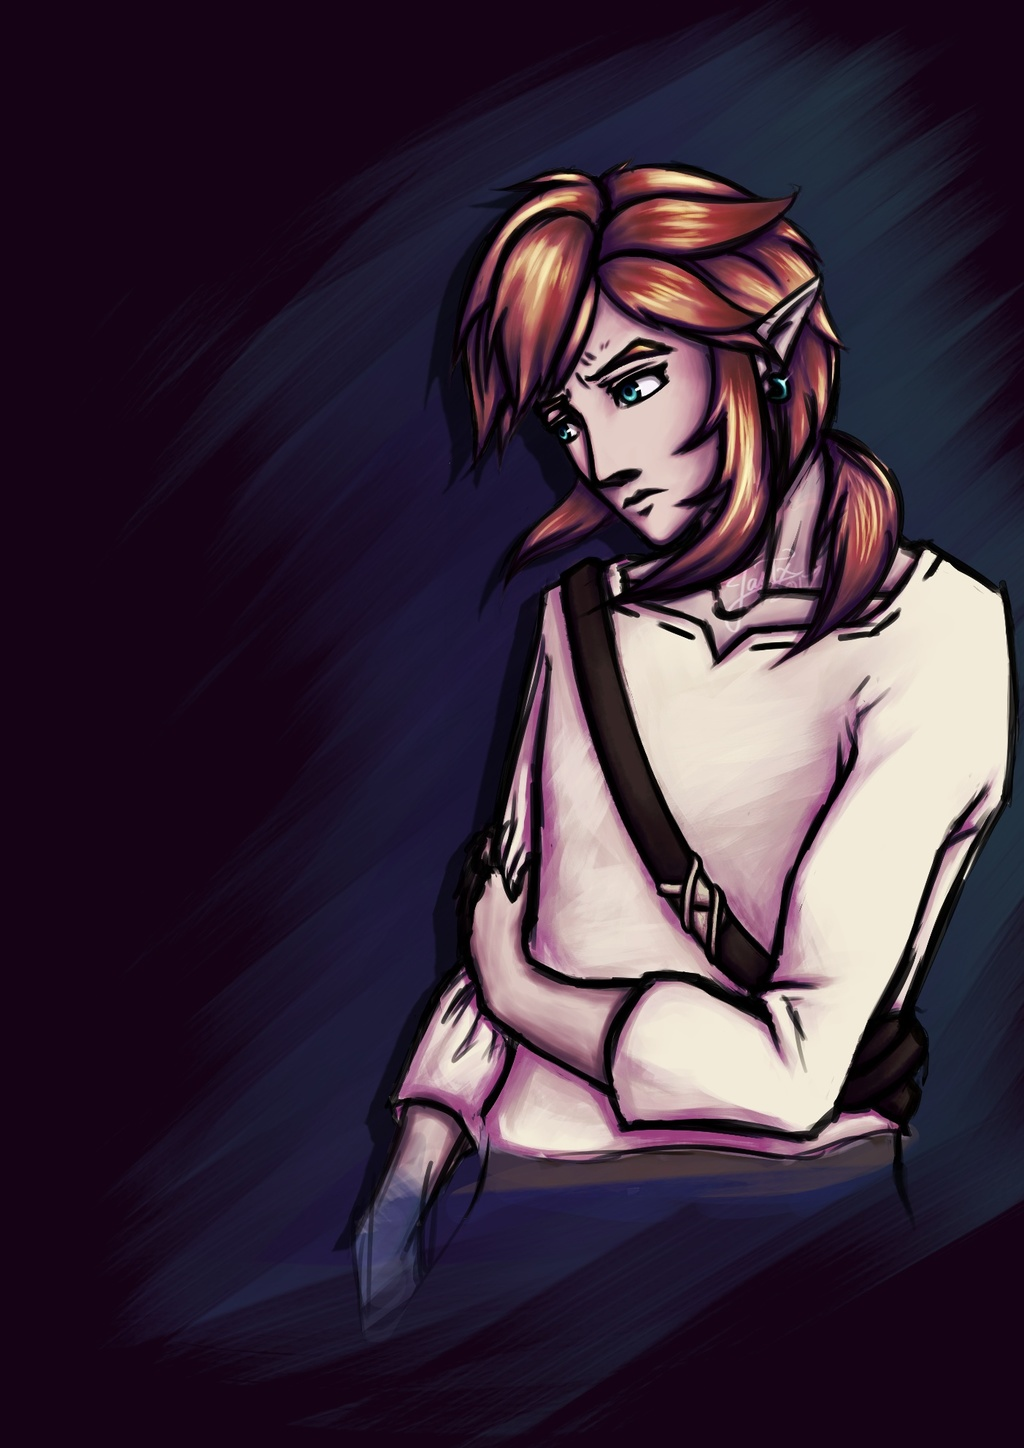 Sad Lonk (non-transparent version)